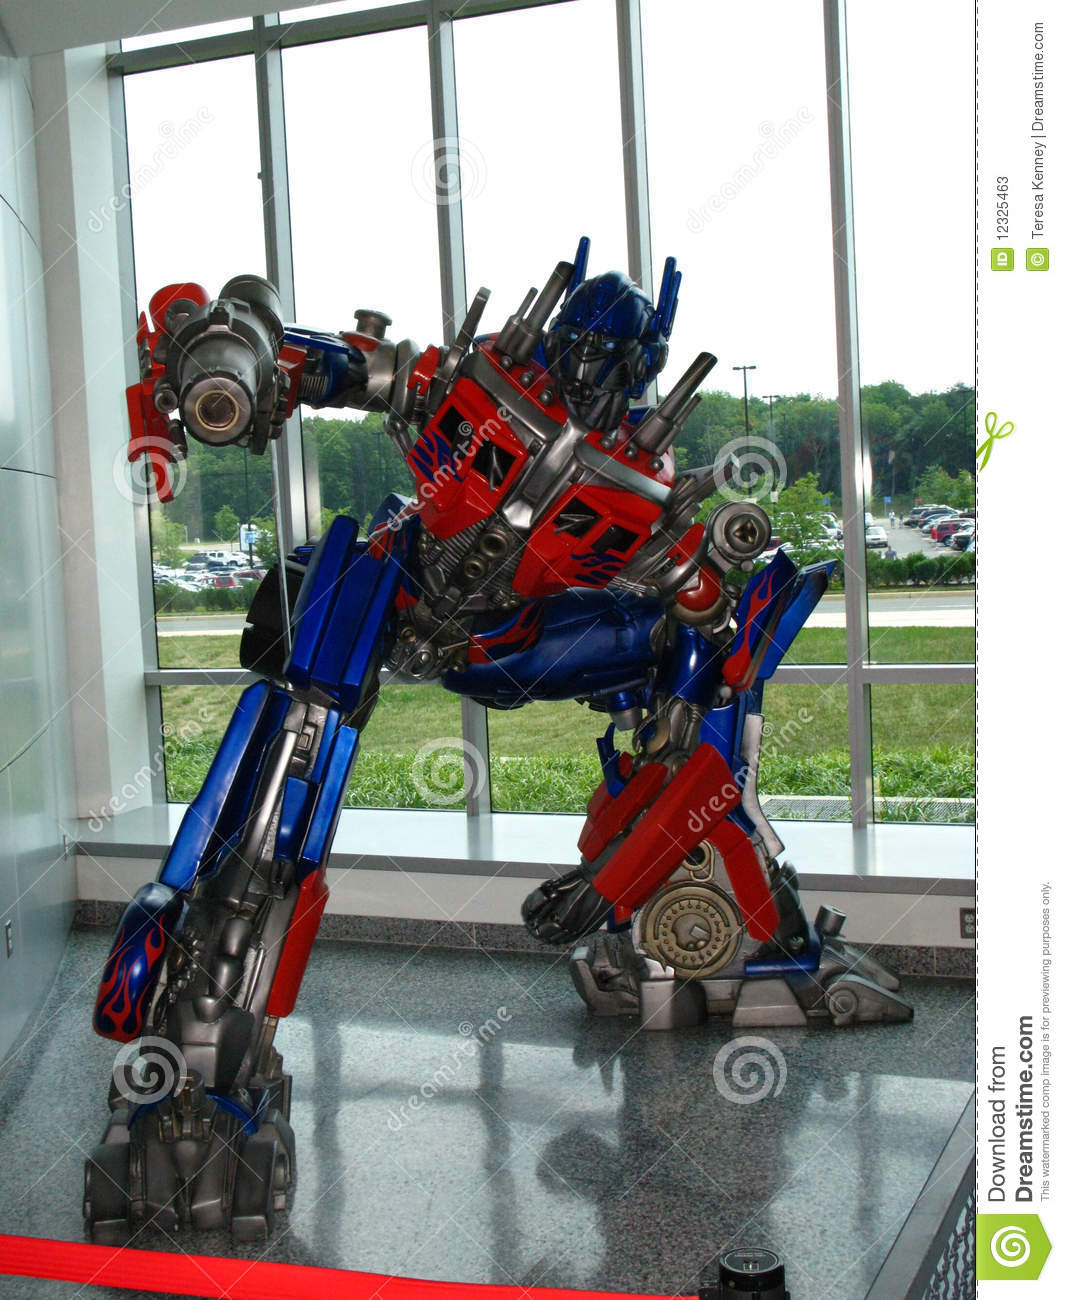 optimus prime the transformer editorial stock photo - image of